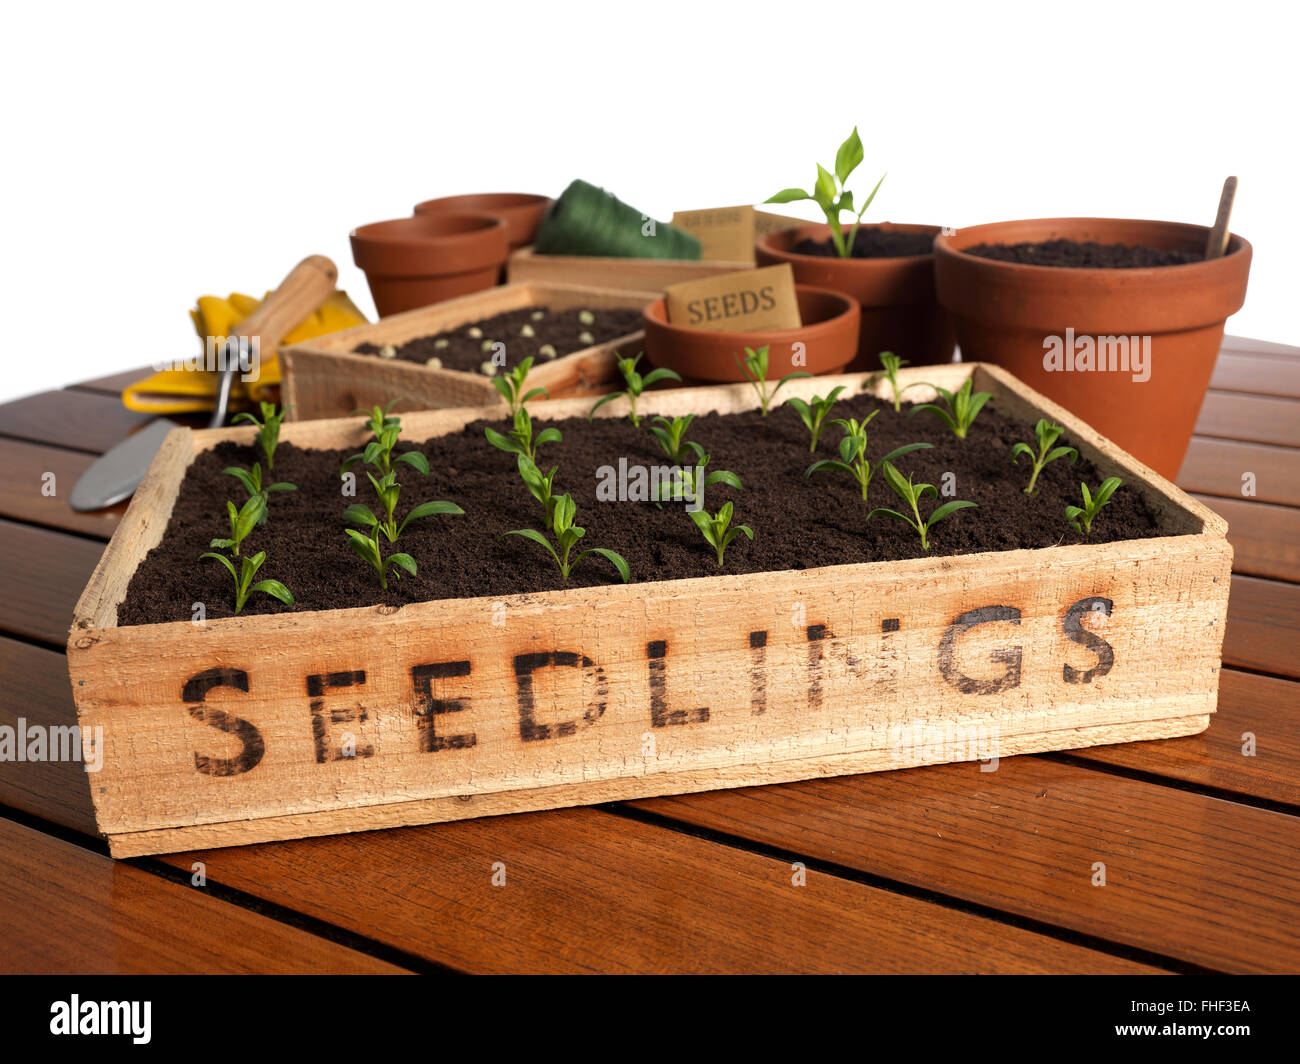 Seedling tray on a garden table top - Stock Image